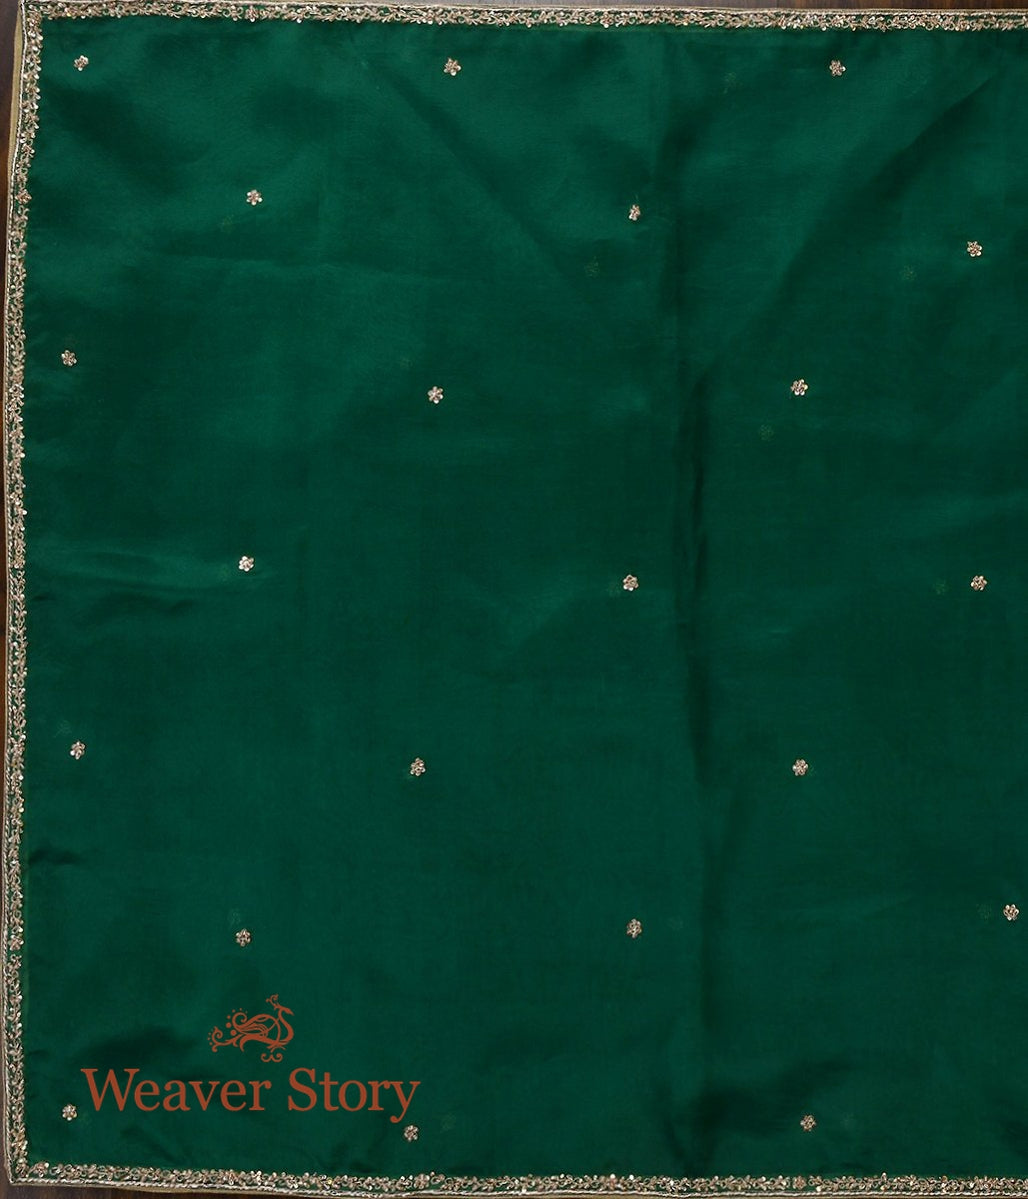 Bottle Green Zardozi Dupatta with Thin Border